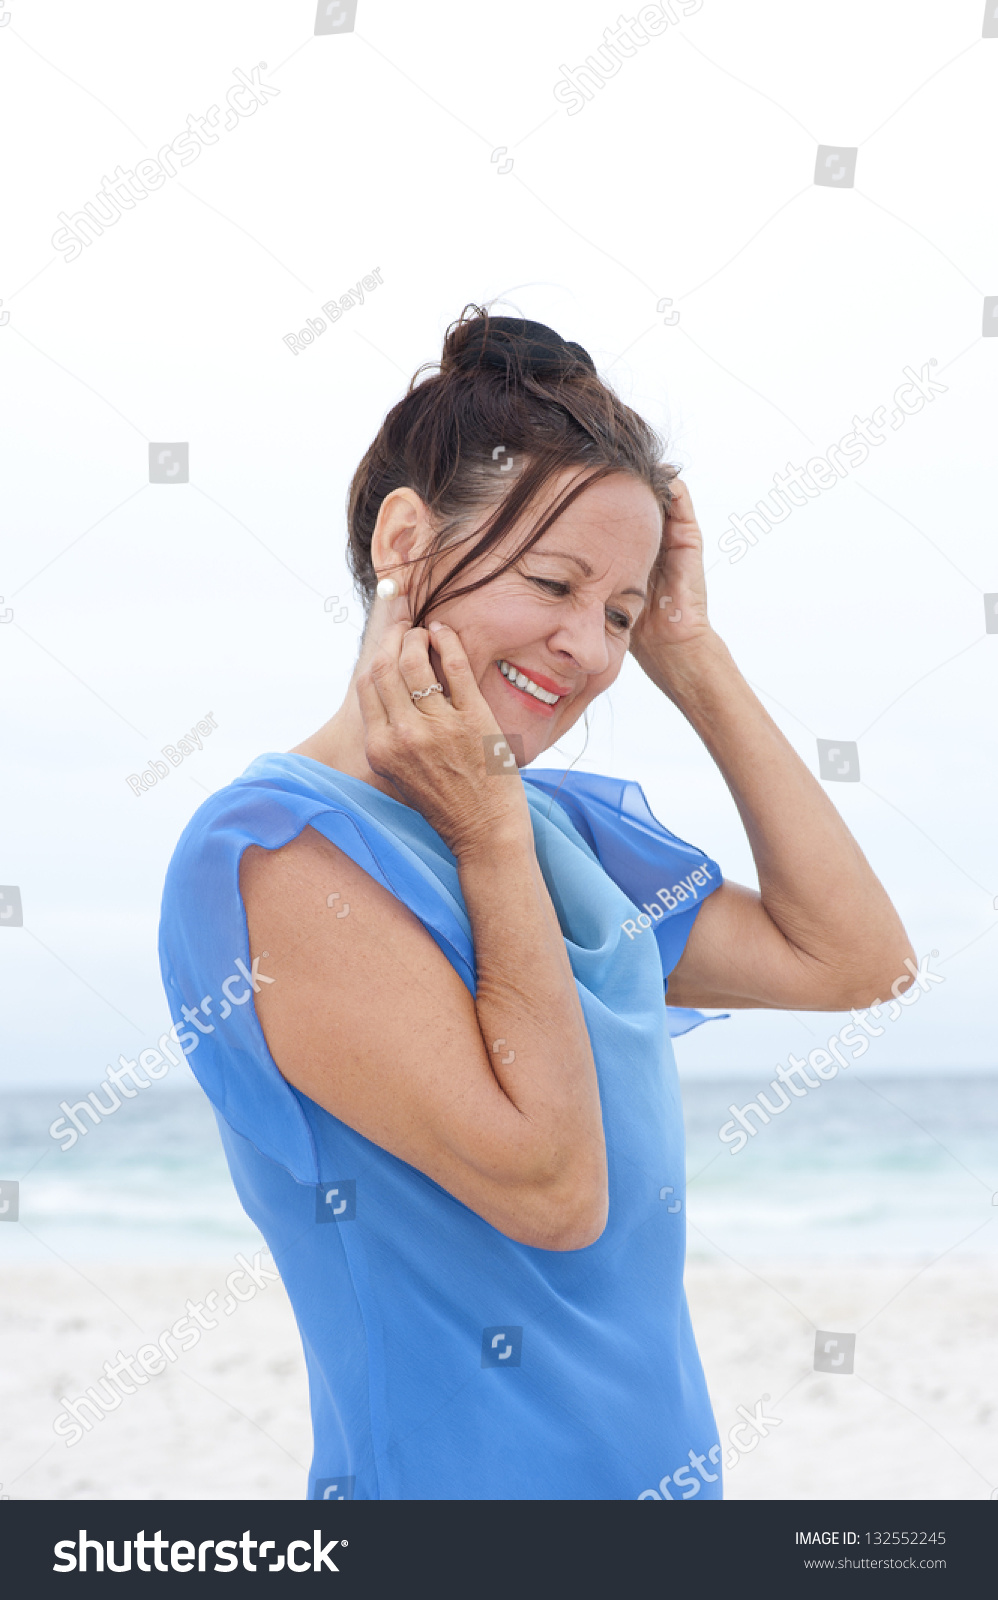 ocean beach mature women personals Dhu is a 100% free dating site to find personals & casual encounters in ocean city  in ocean city for beach  pet lovers, cute ocean city women,.